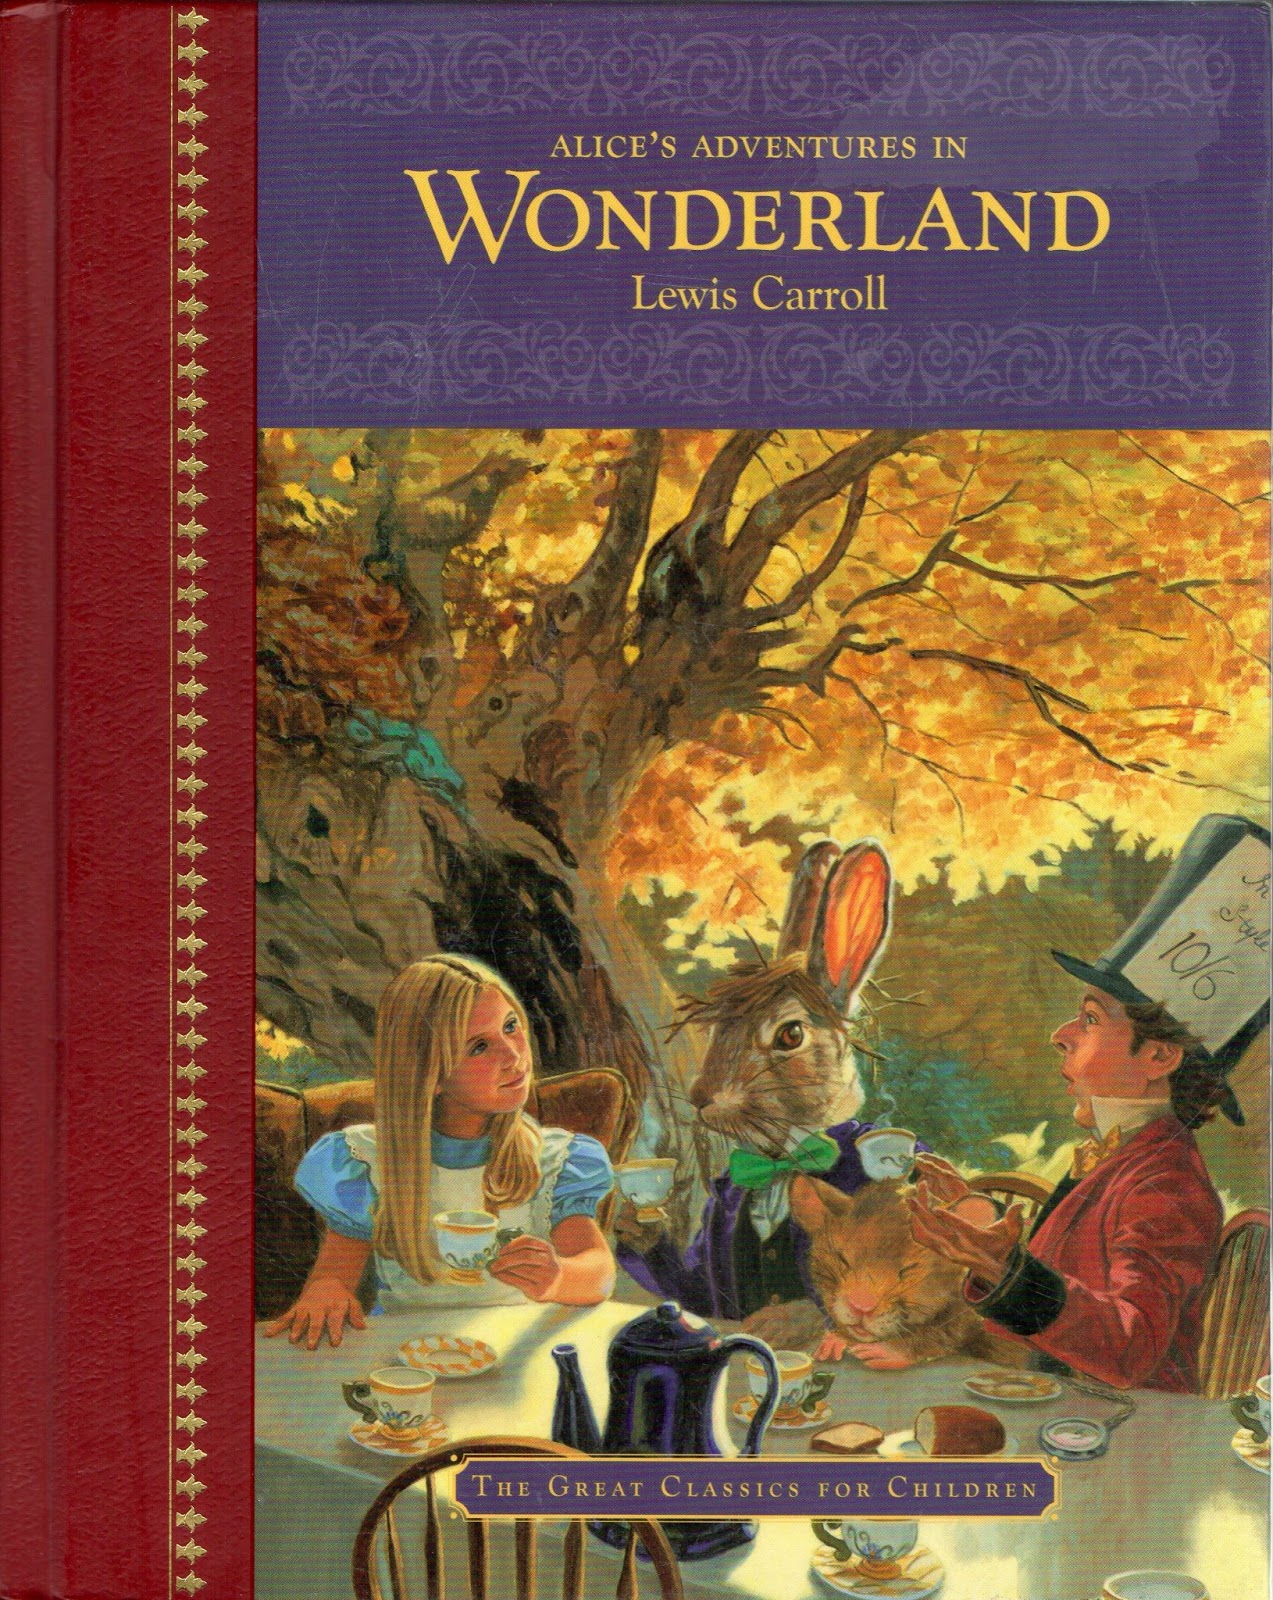 an analysis of the setting in alices adventure in wonderland Read common sense media's alice's adventures in wonderland review, age rating  all kids deserve to know this wonderful adventure as lewis carroll wrote it.